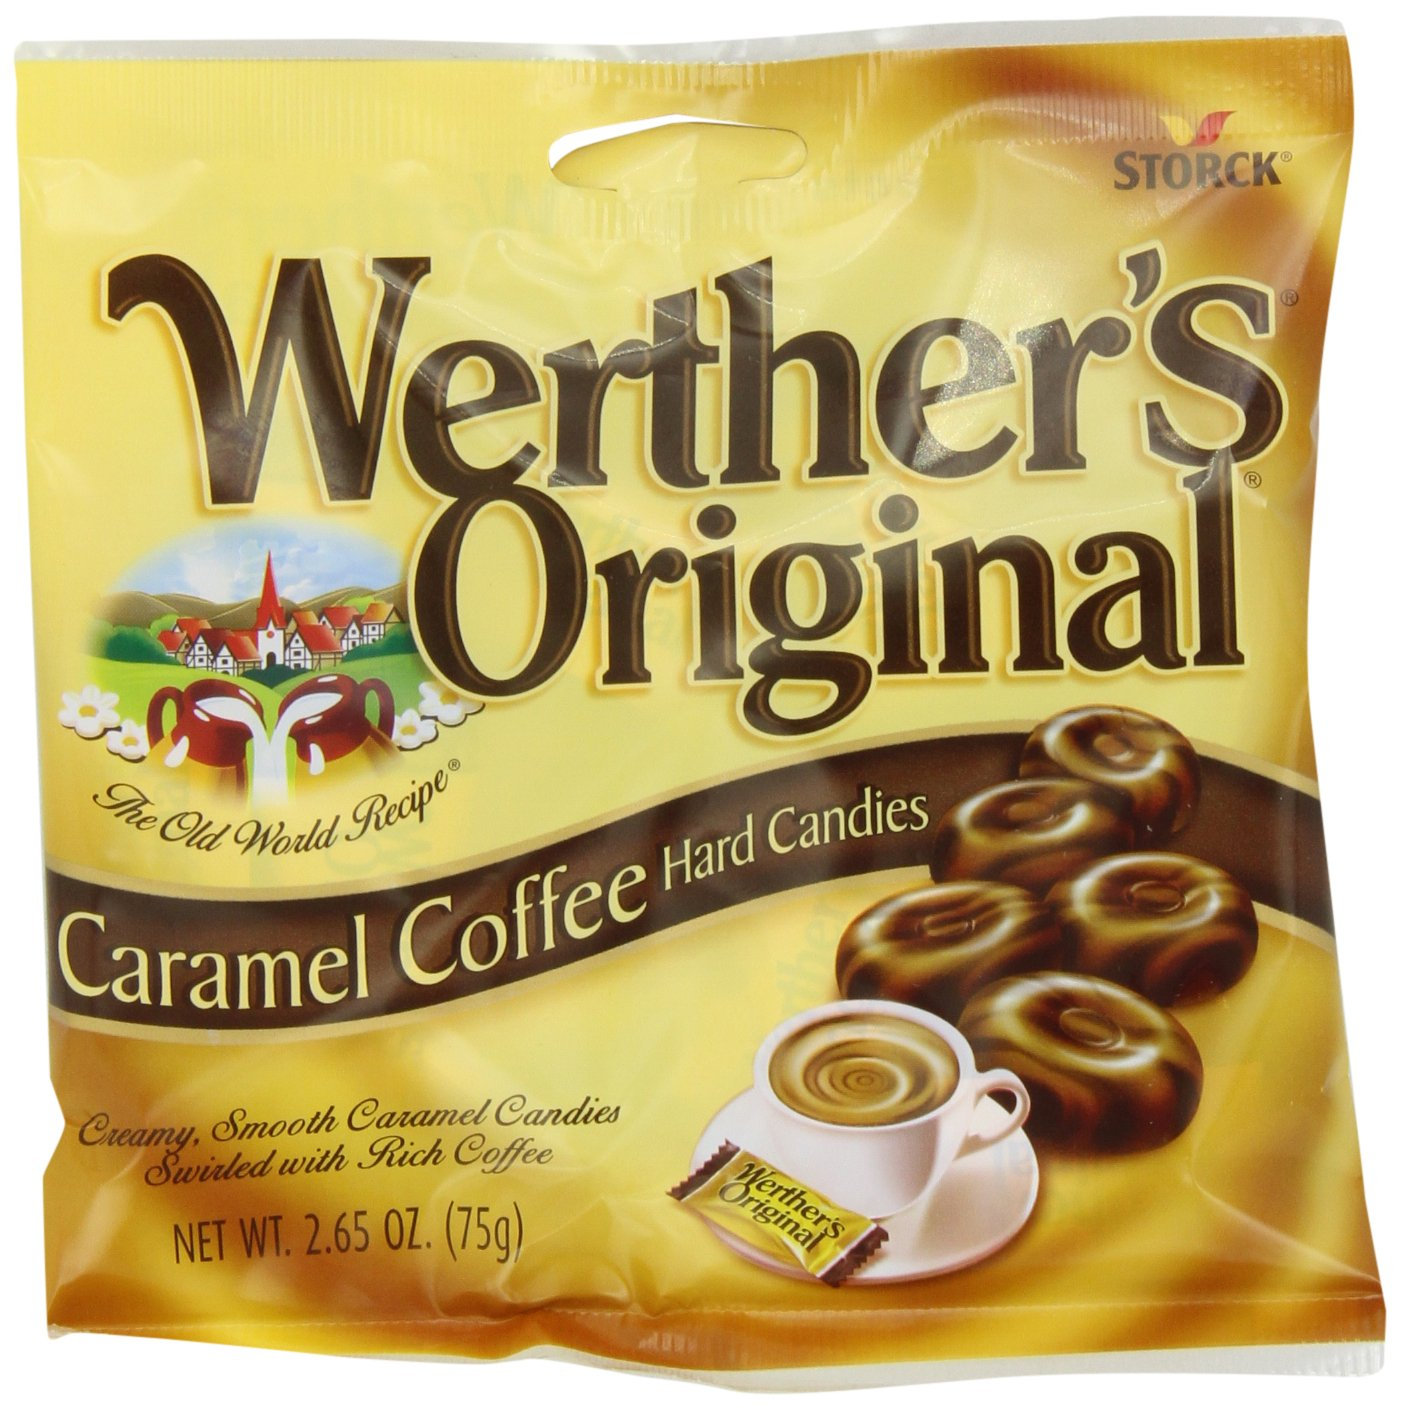 Werther's Original Caramel, Coffee, 2.65-Ounce (Pack of 12) by Werther's